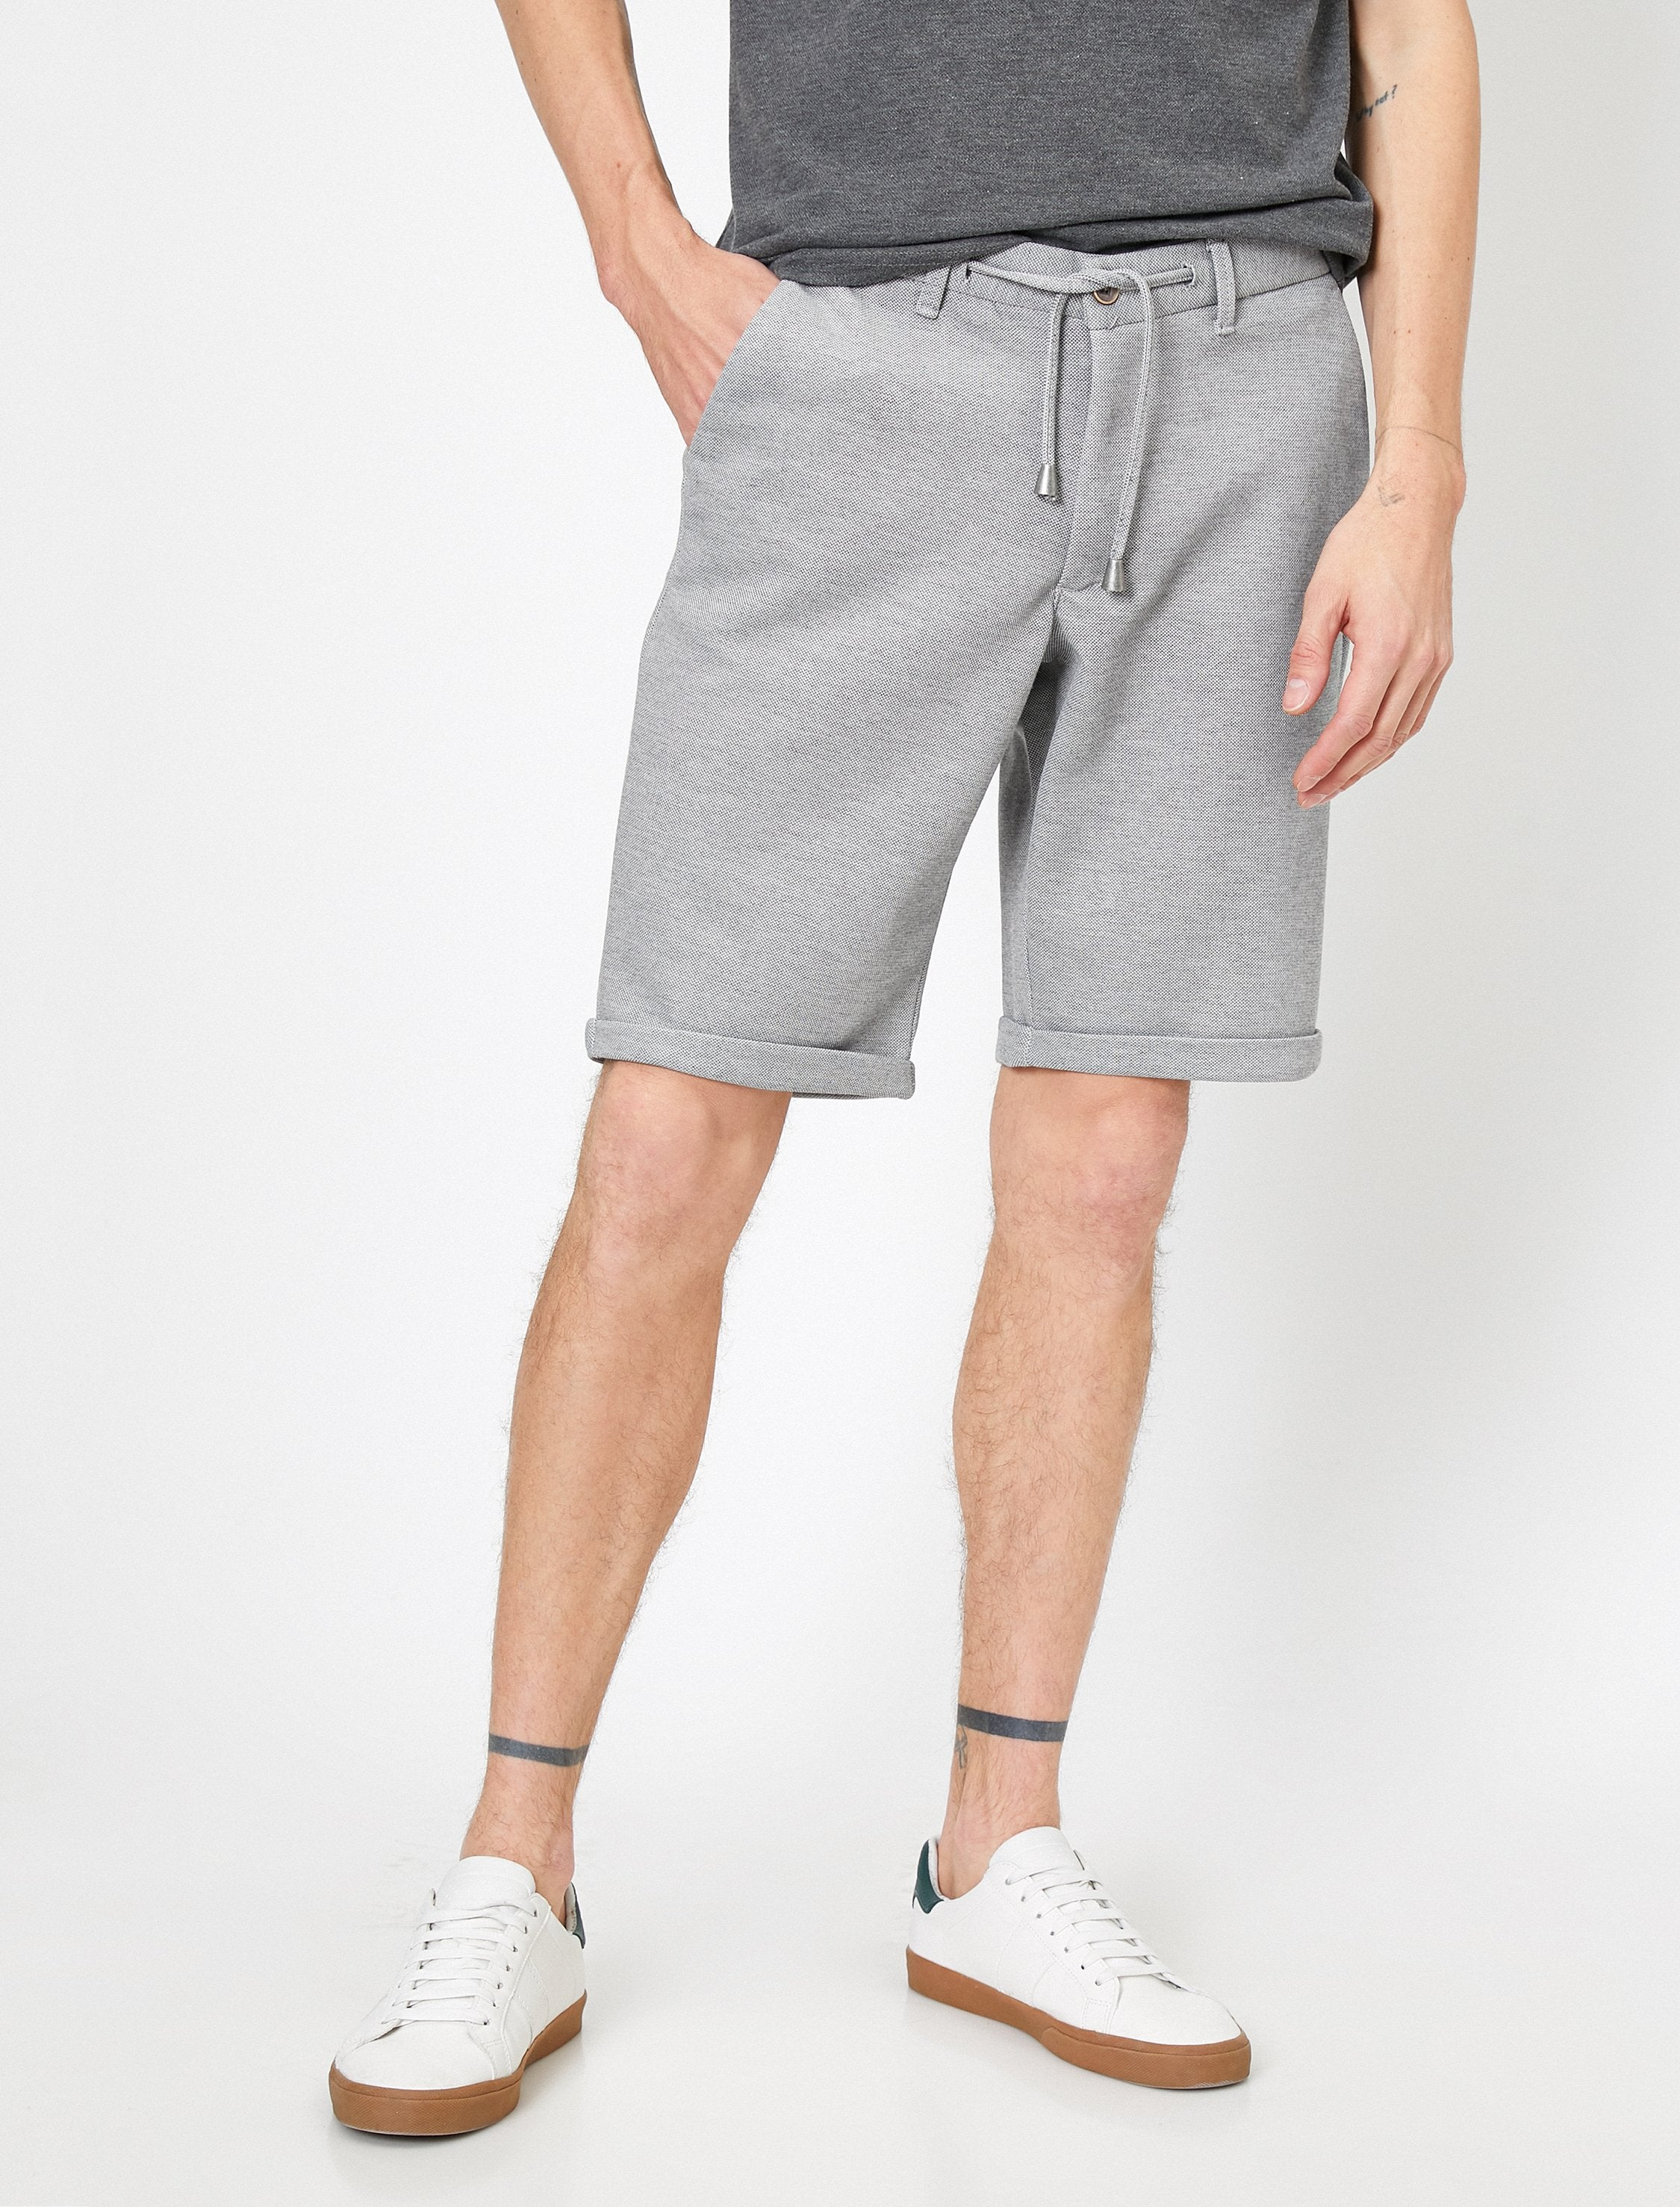 Chambray Shorts in Gray